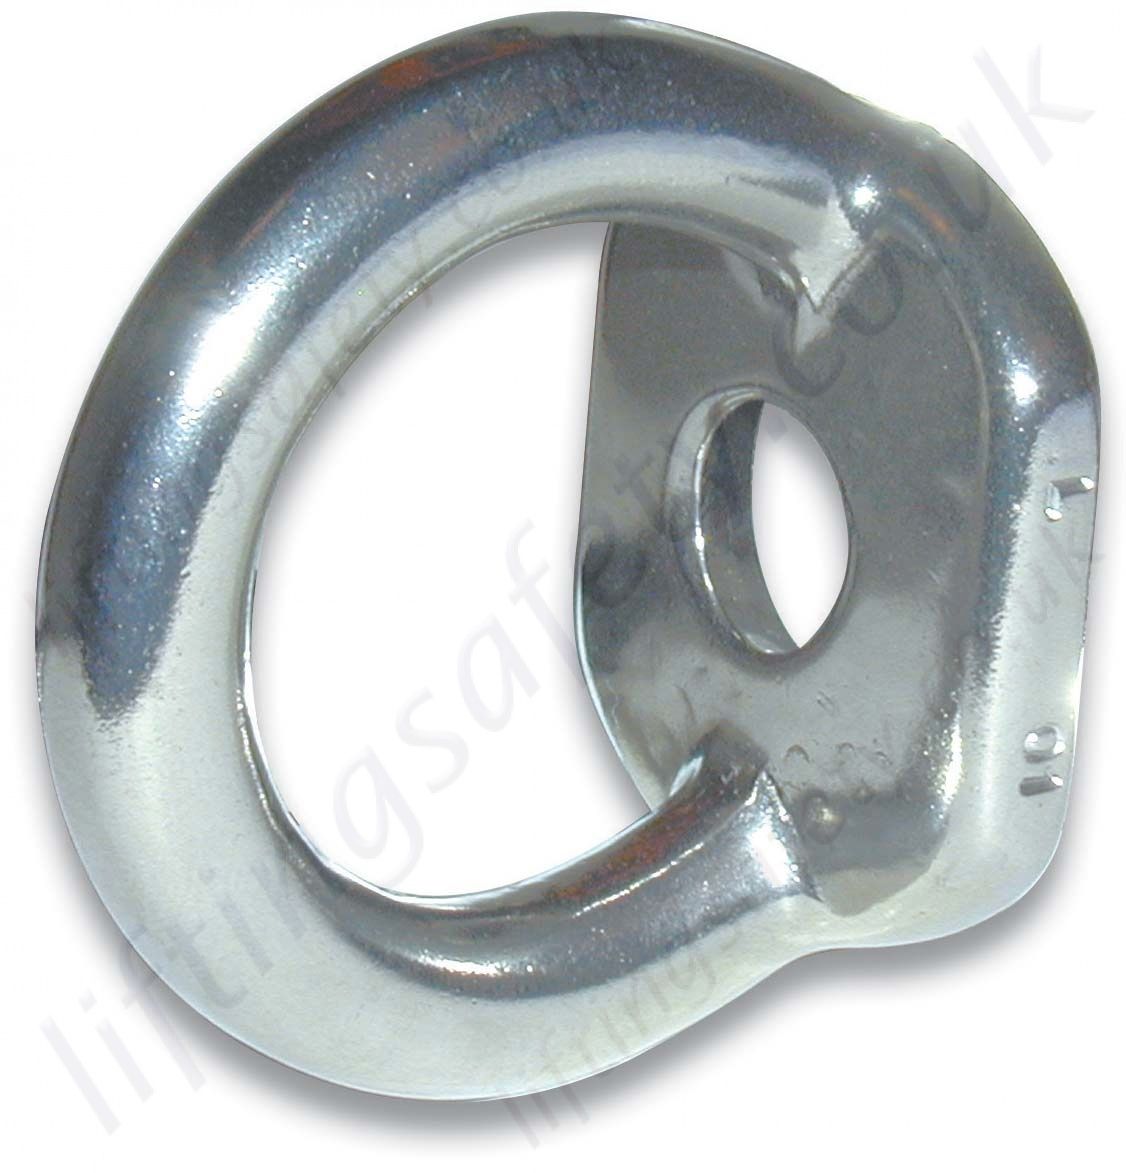 Stainless Steel Anchor Points : Protecta quot am stainless steel d ring fall arrest